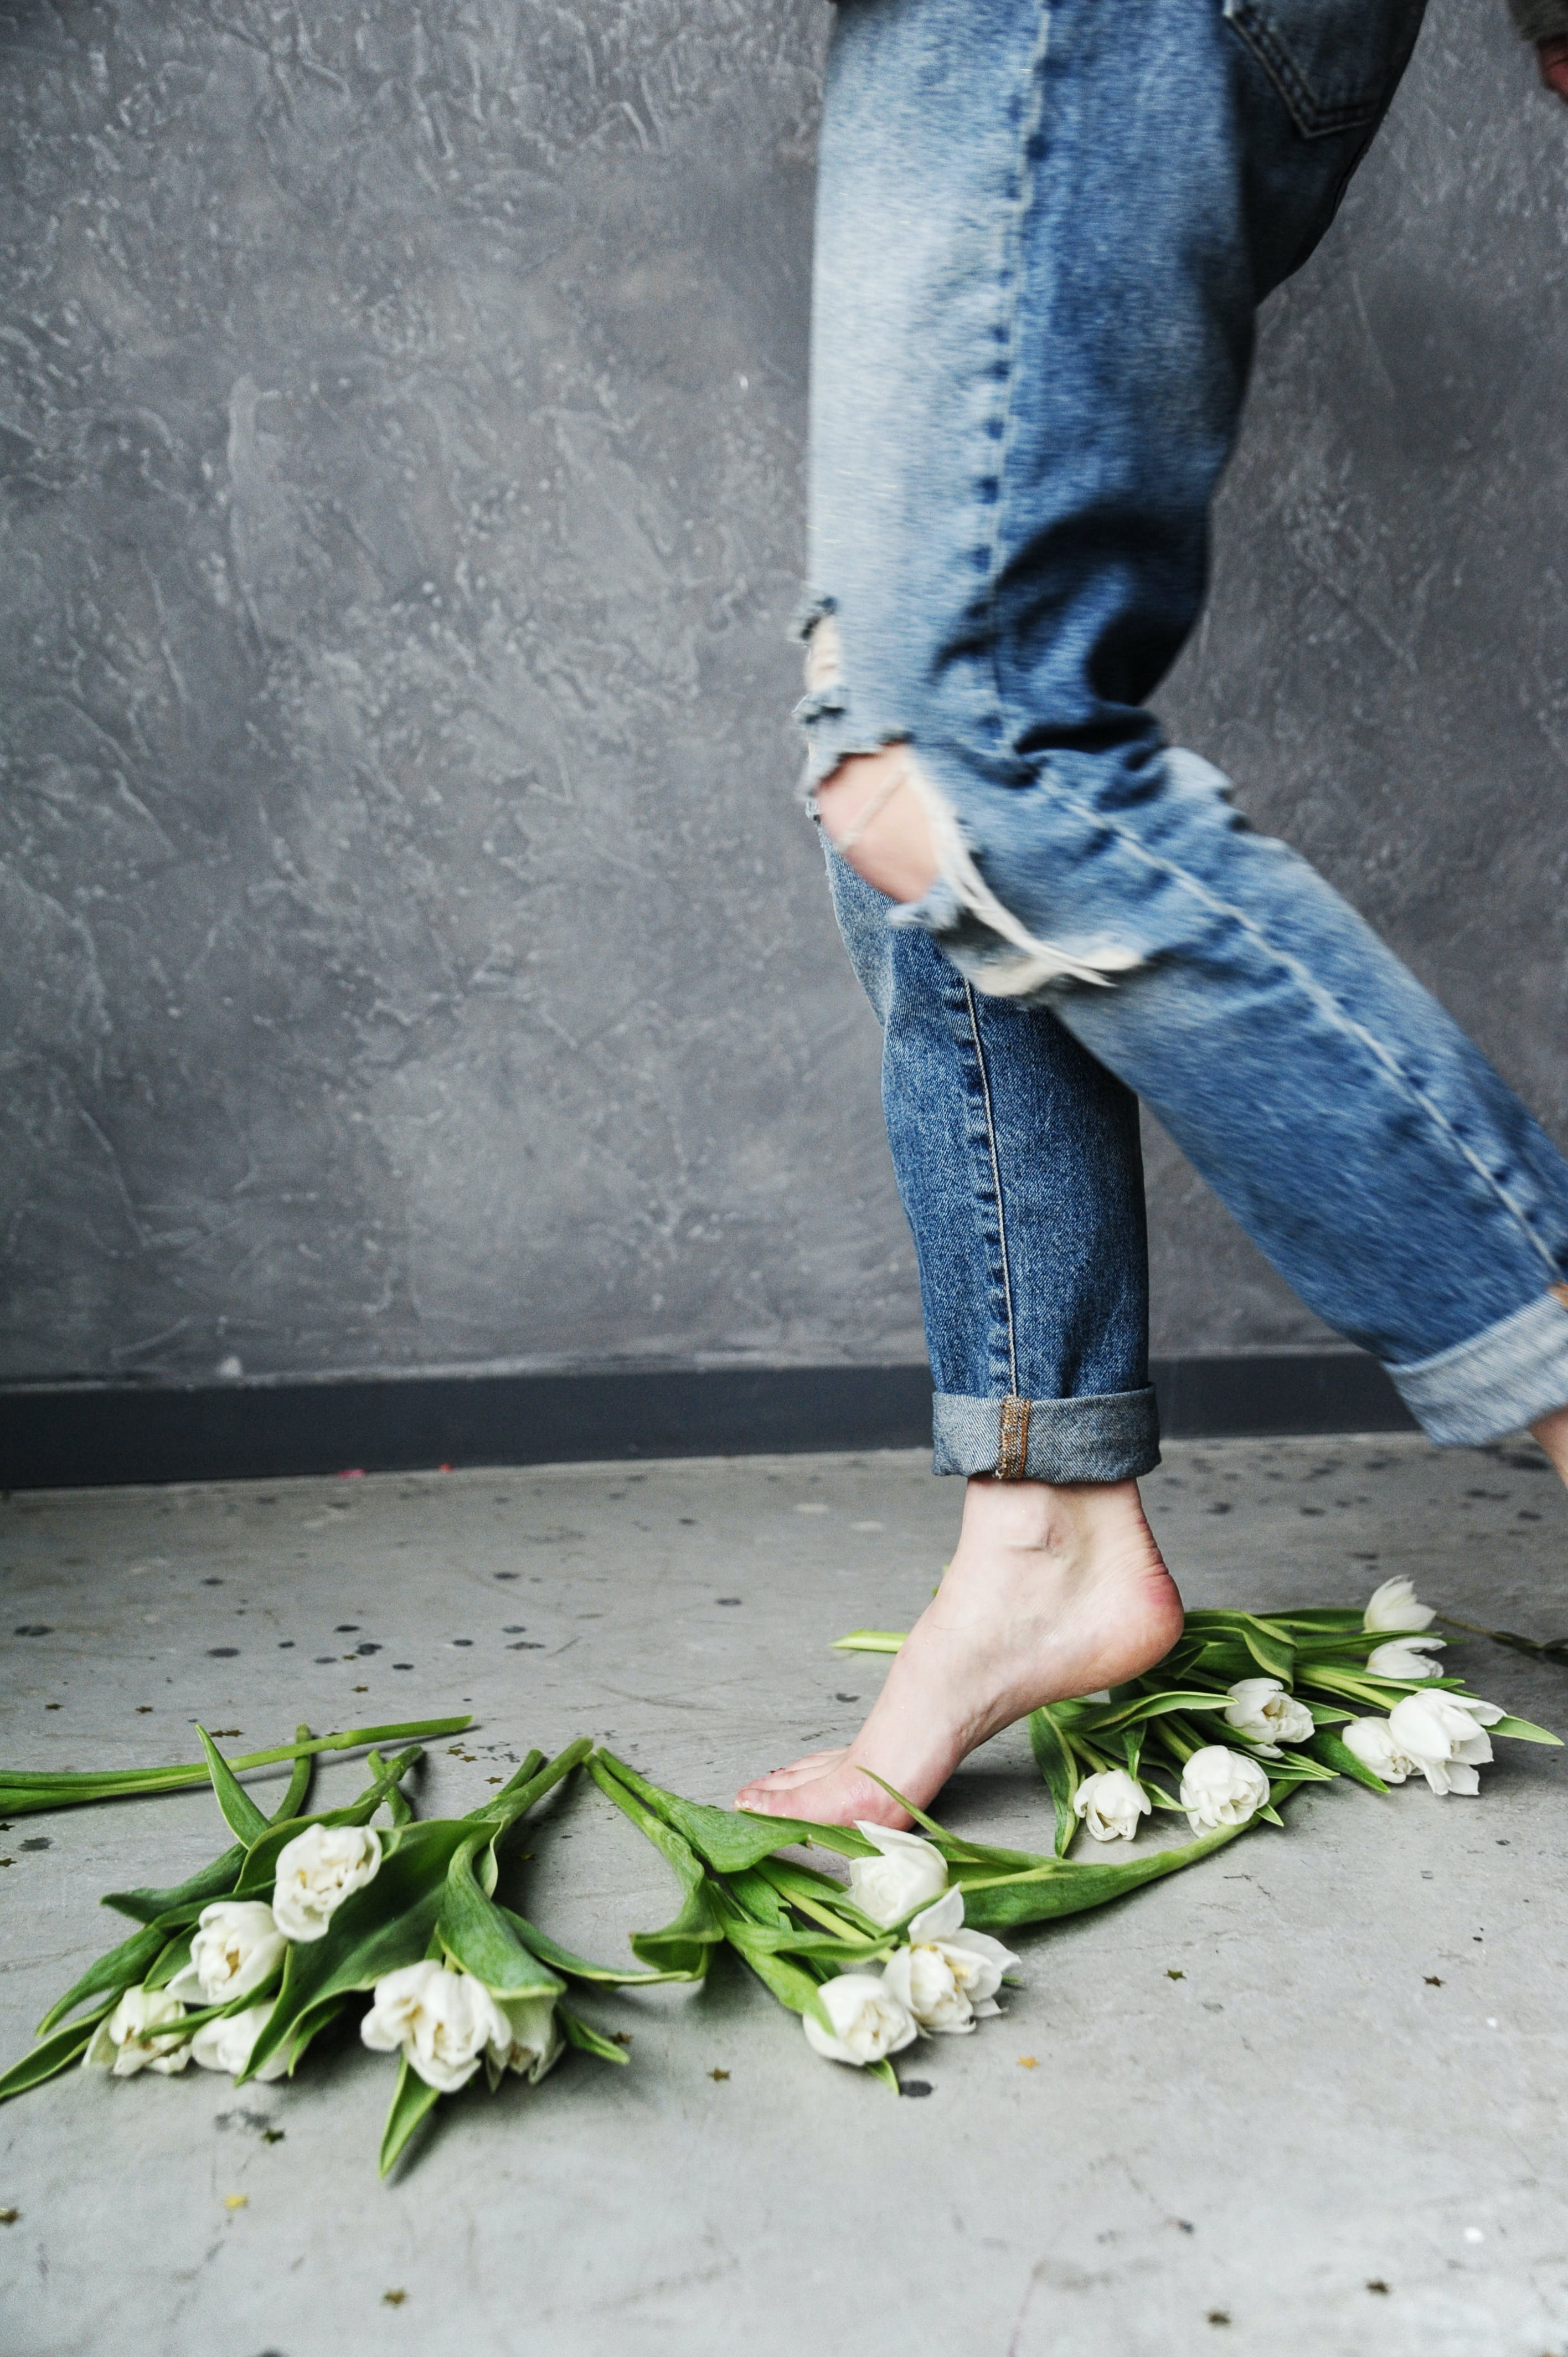 Person in Blue Ripped Jeans